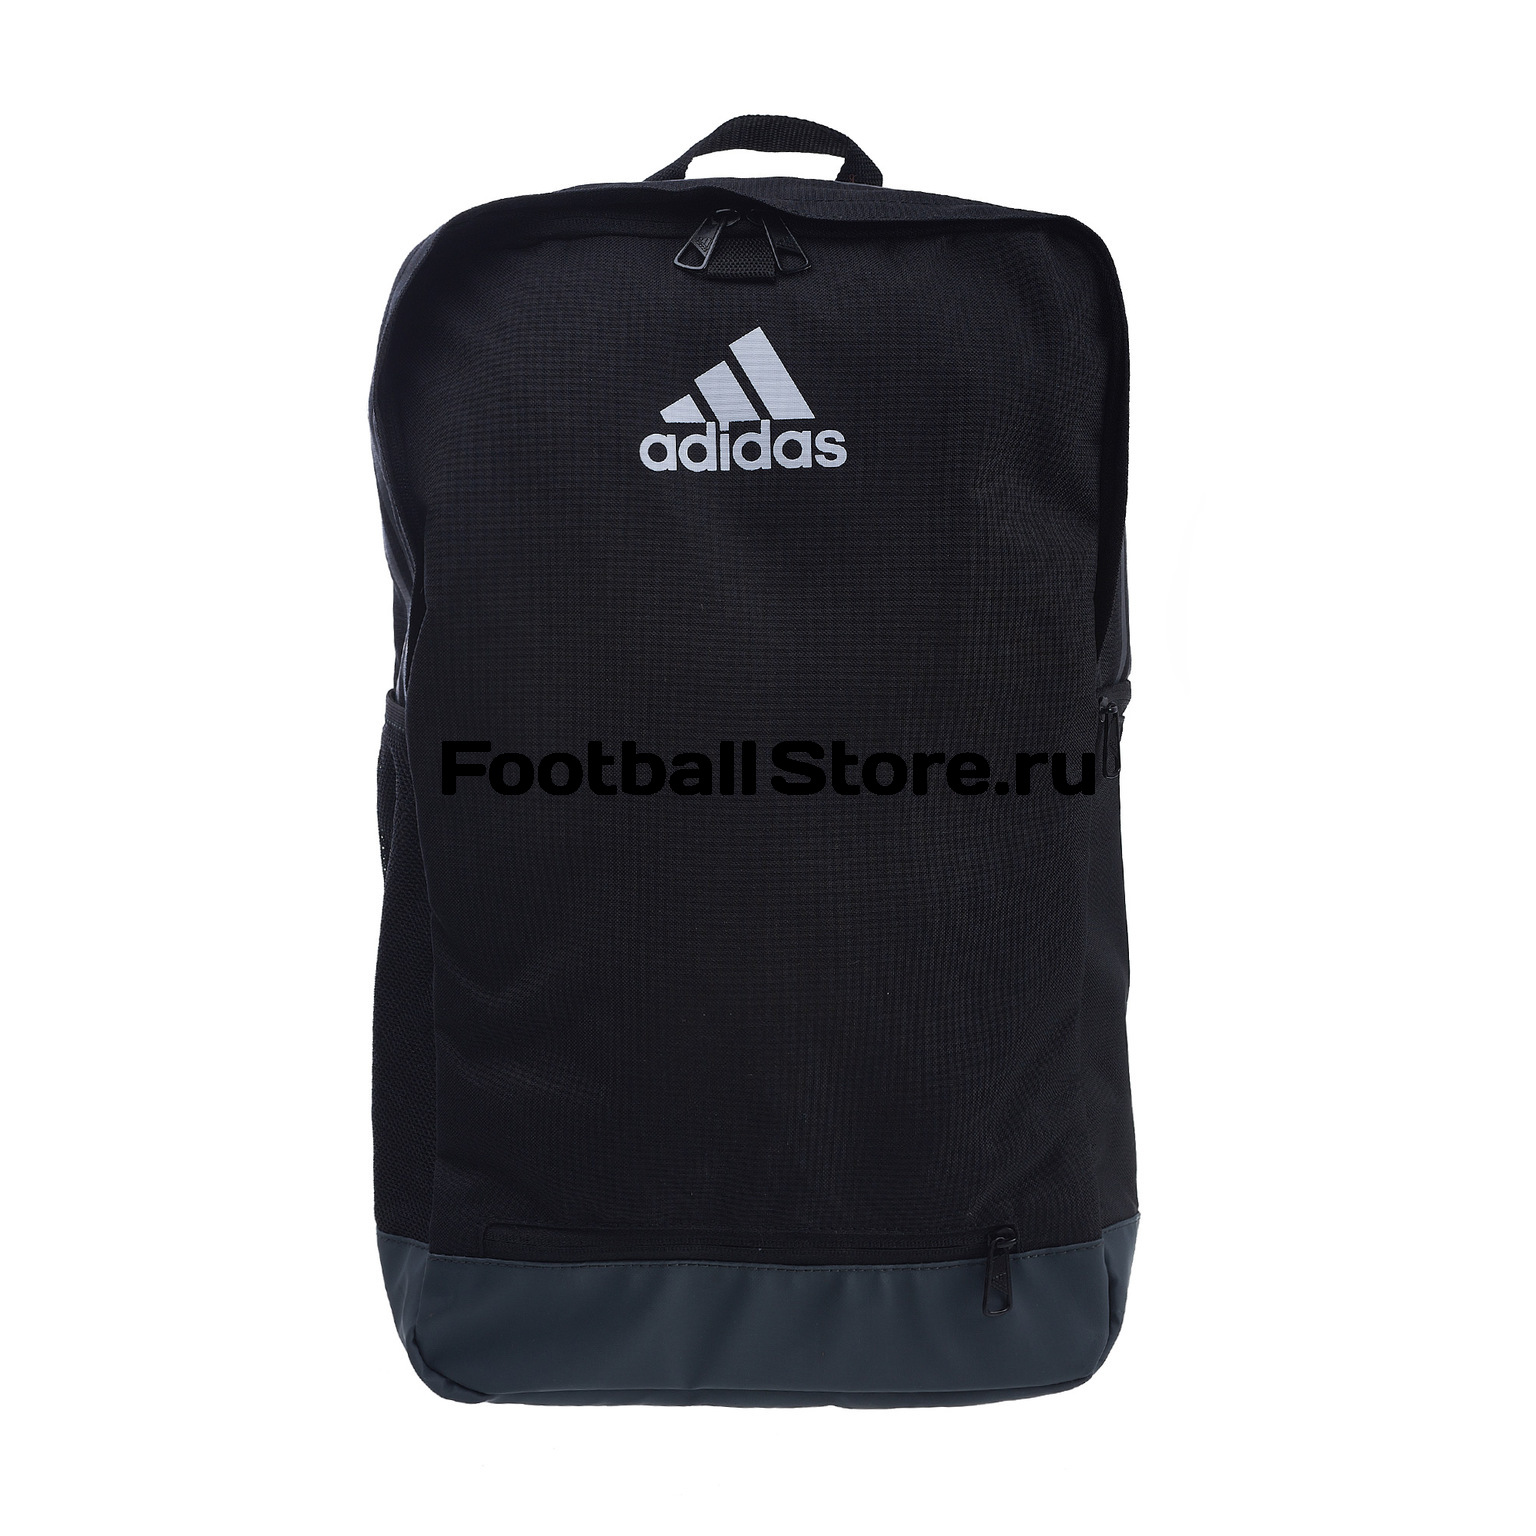 Рюкзак Adidas Tiro Ballnet B46132 рюкзак adidas tiro bp bs4761